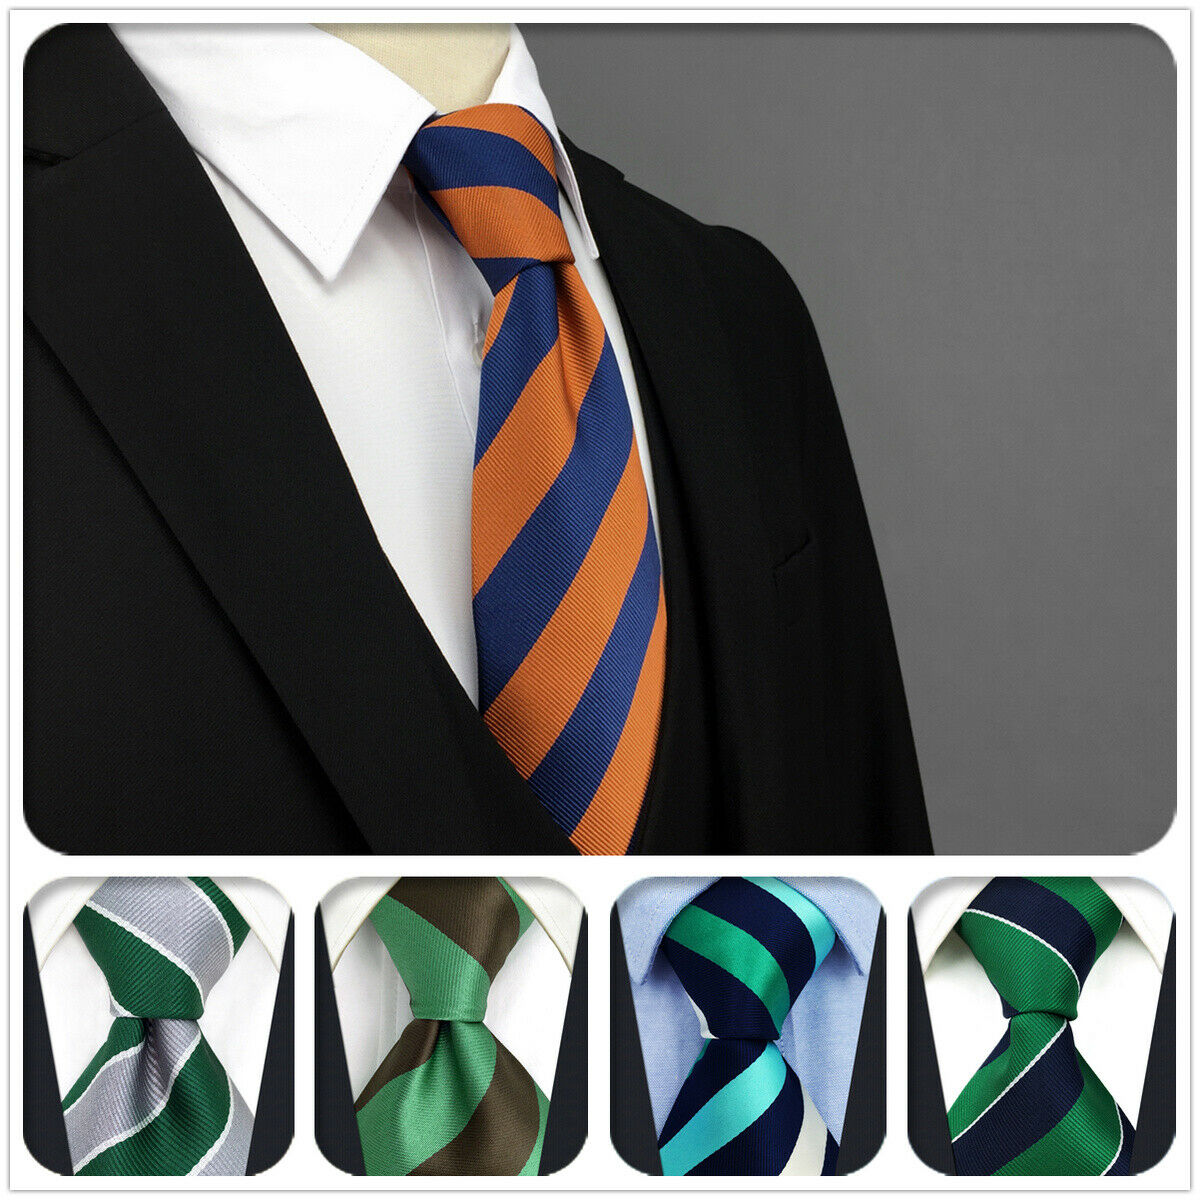 S&W SHLAX&WING Silk Ties for Men Striped Necktie Extra Long New Jacquard Woven